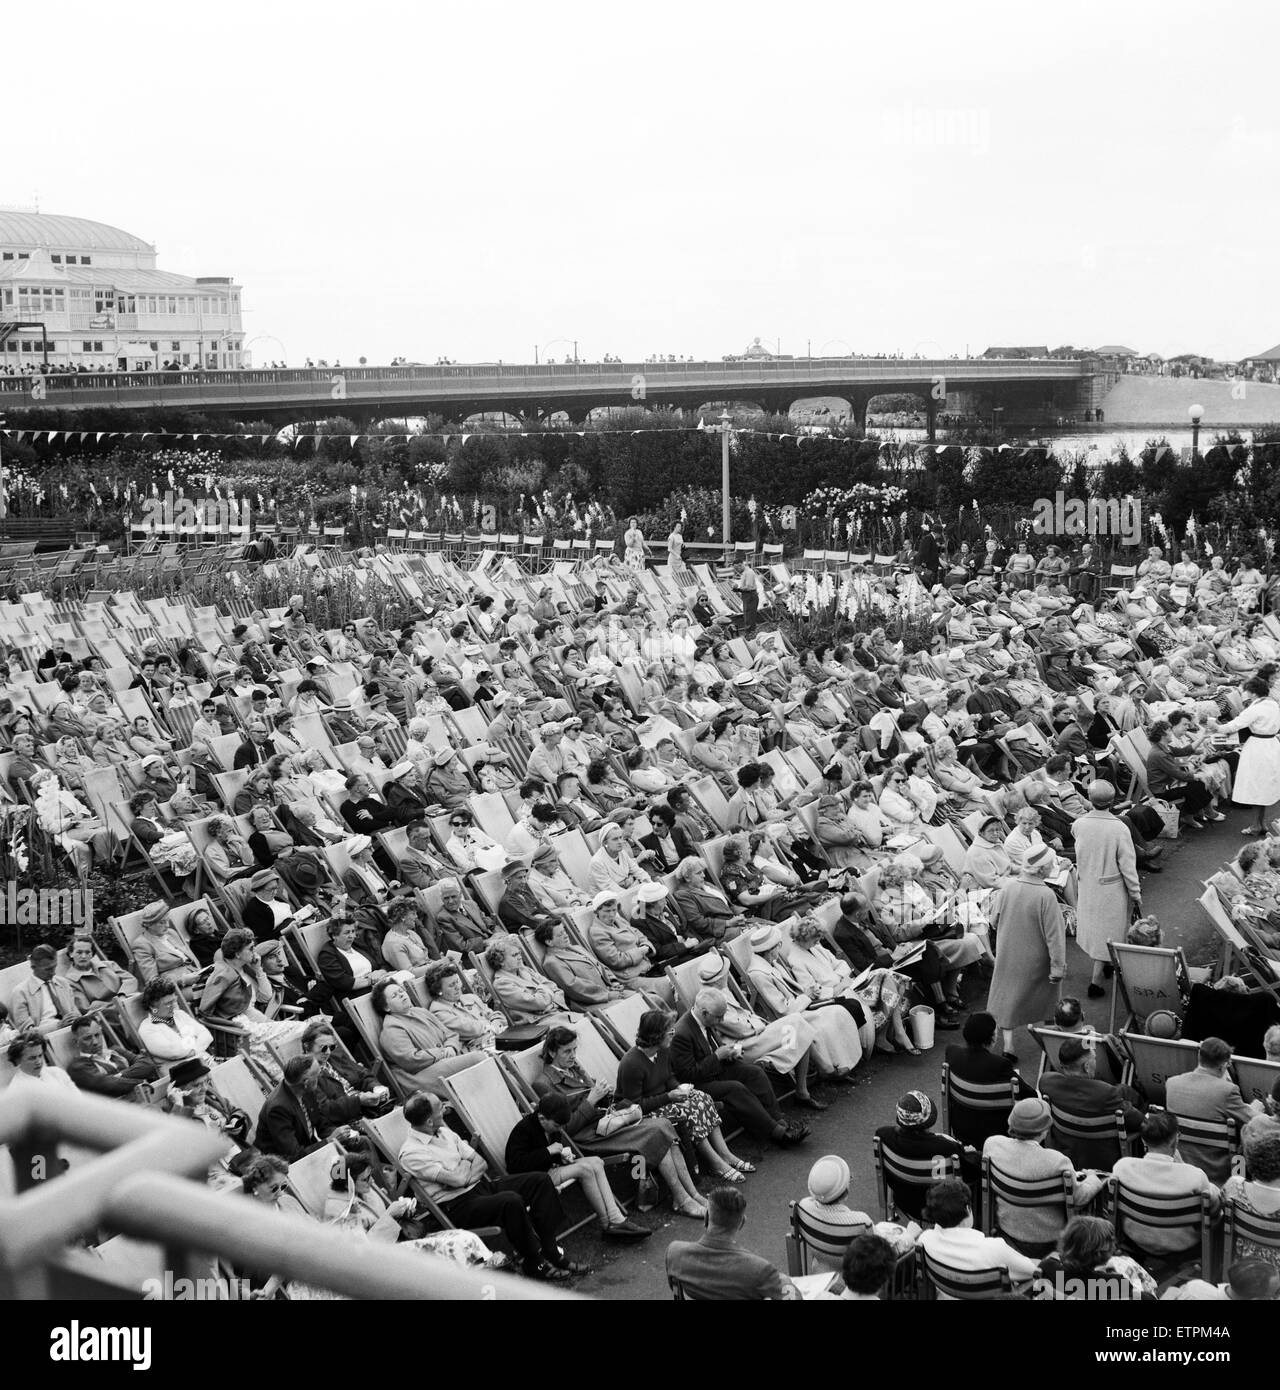 Southport, Merseyside, crowds of people relax in the Floral Hall Gardens as they listen to the band. 5th August - Stock Image